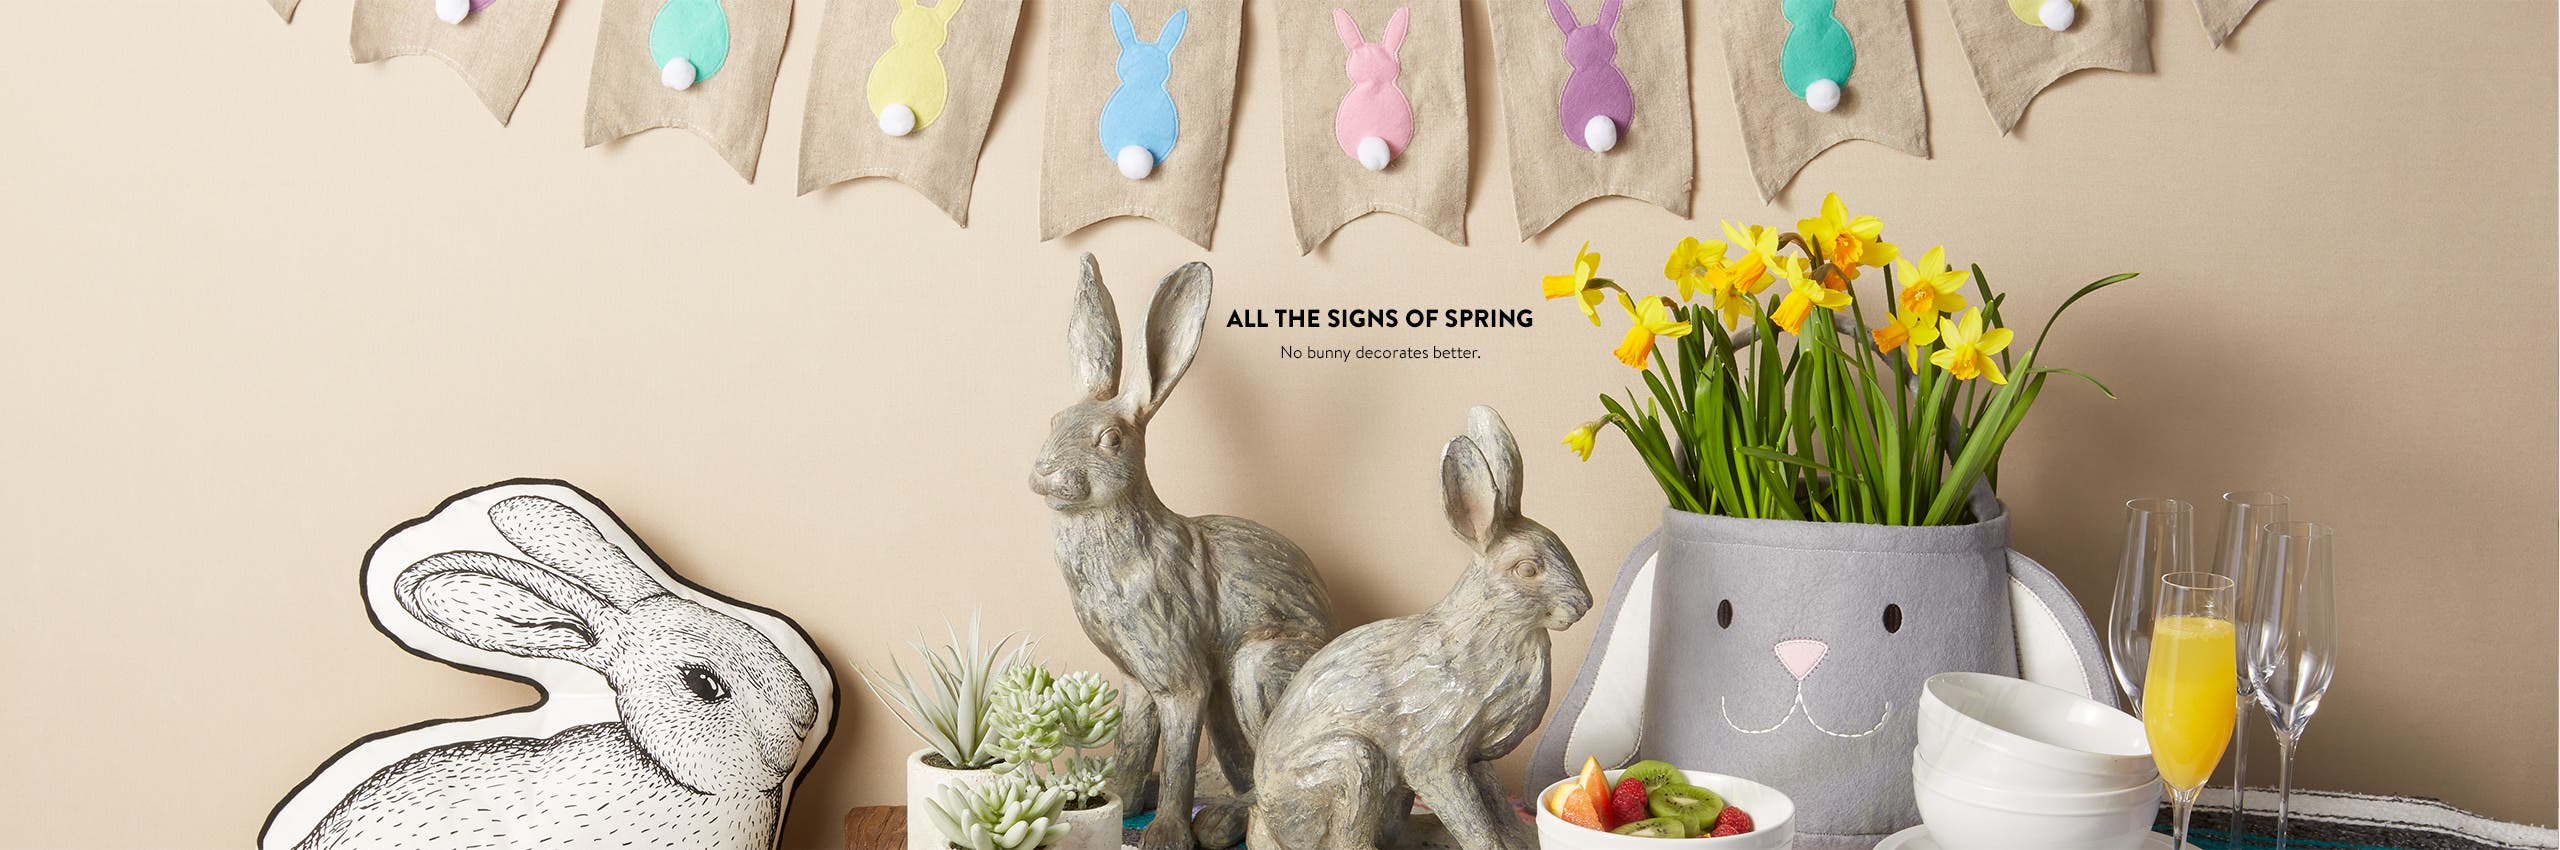 Bunny decorations for spring.